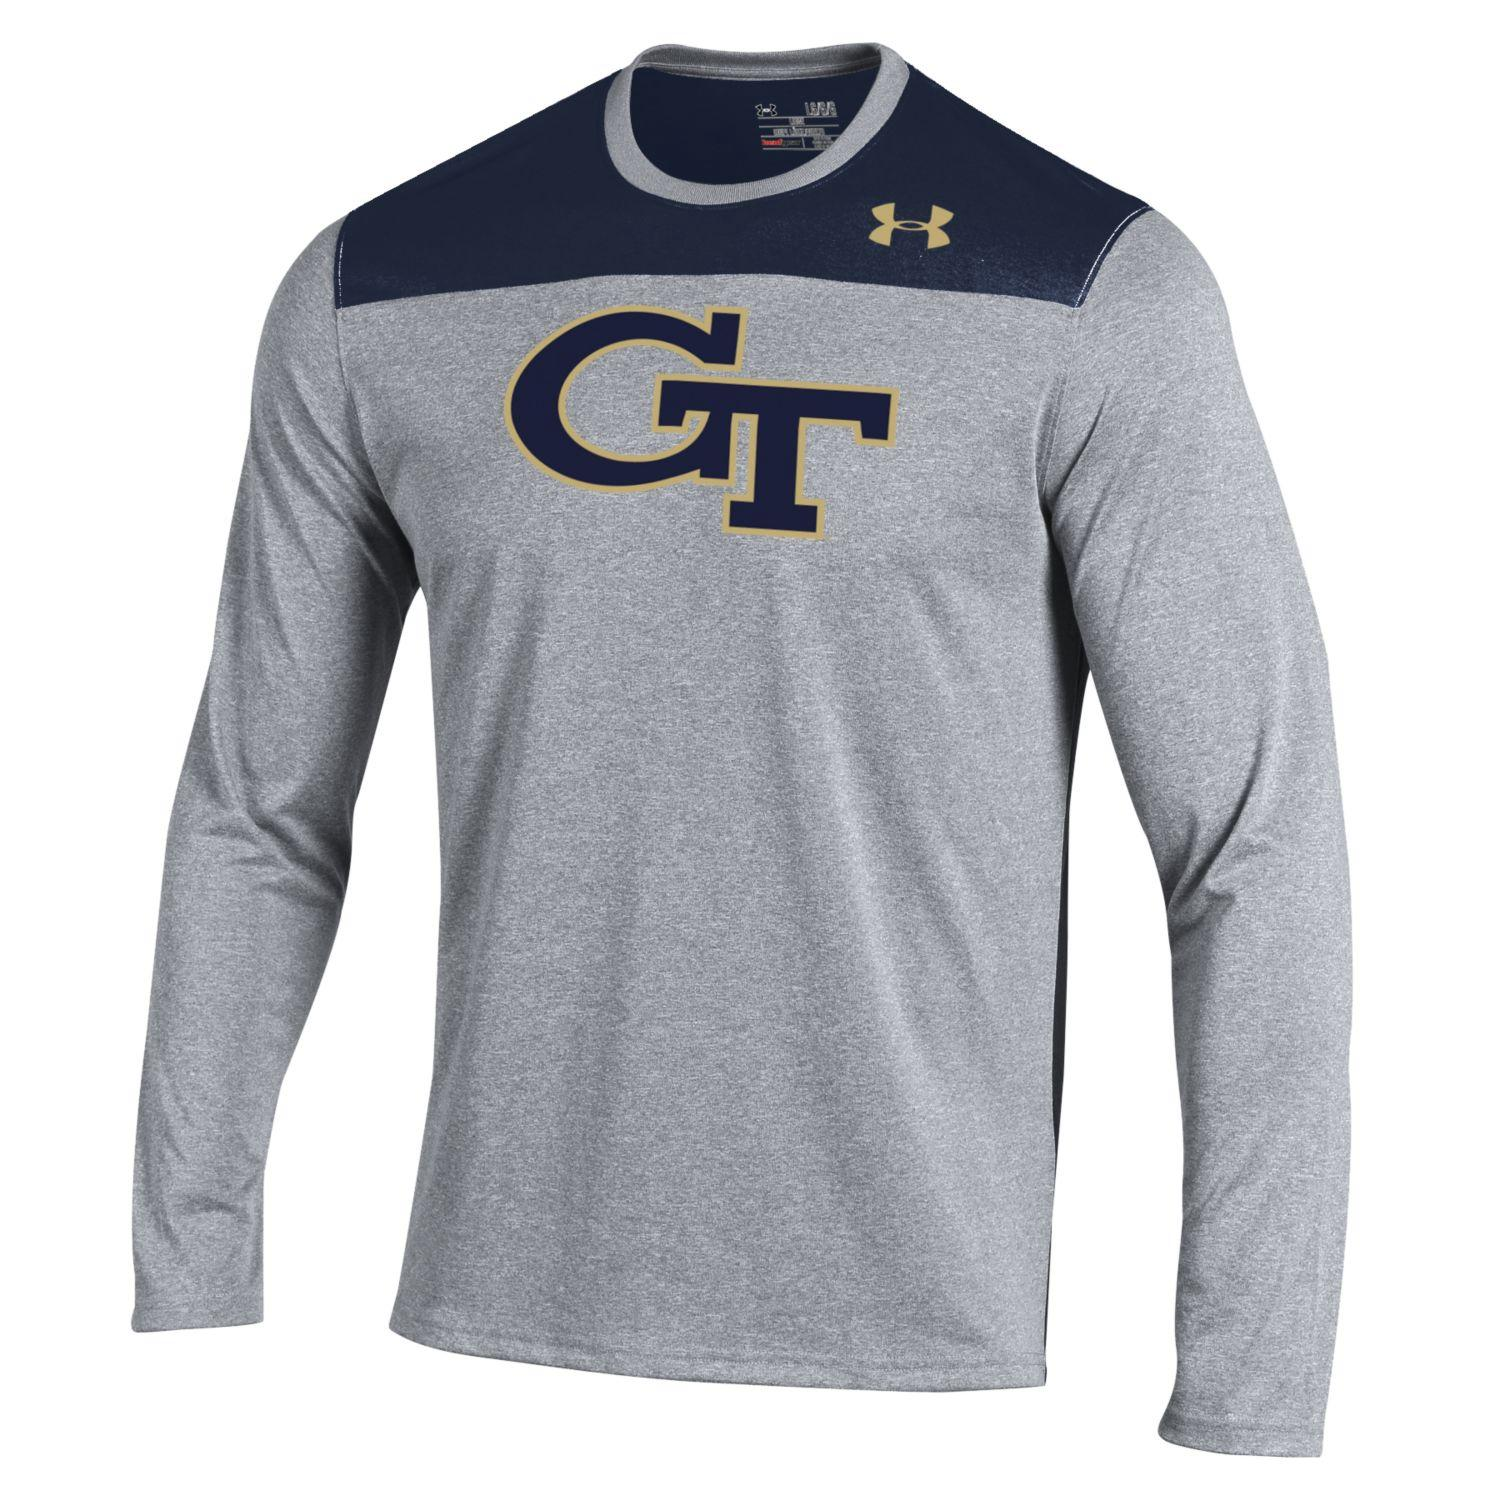 Georgia Tech Yellowjackets Under Armour Defensive Stop Performance L/S Shirt